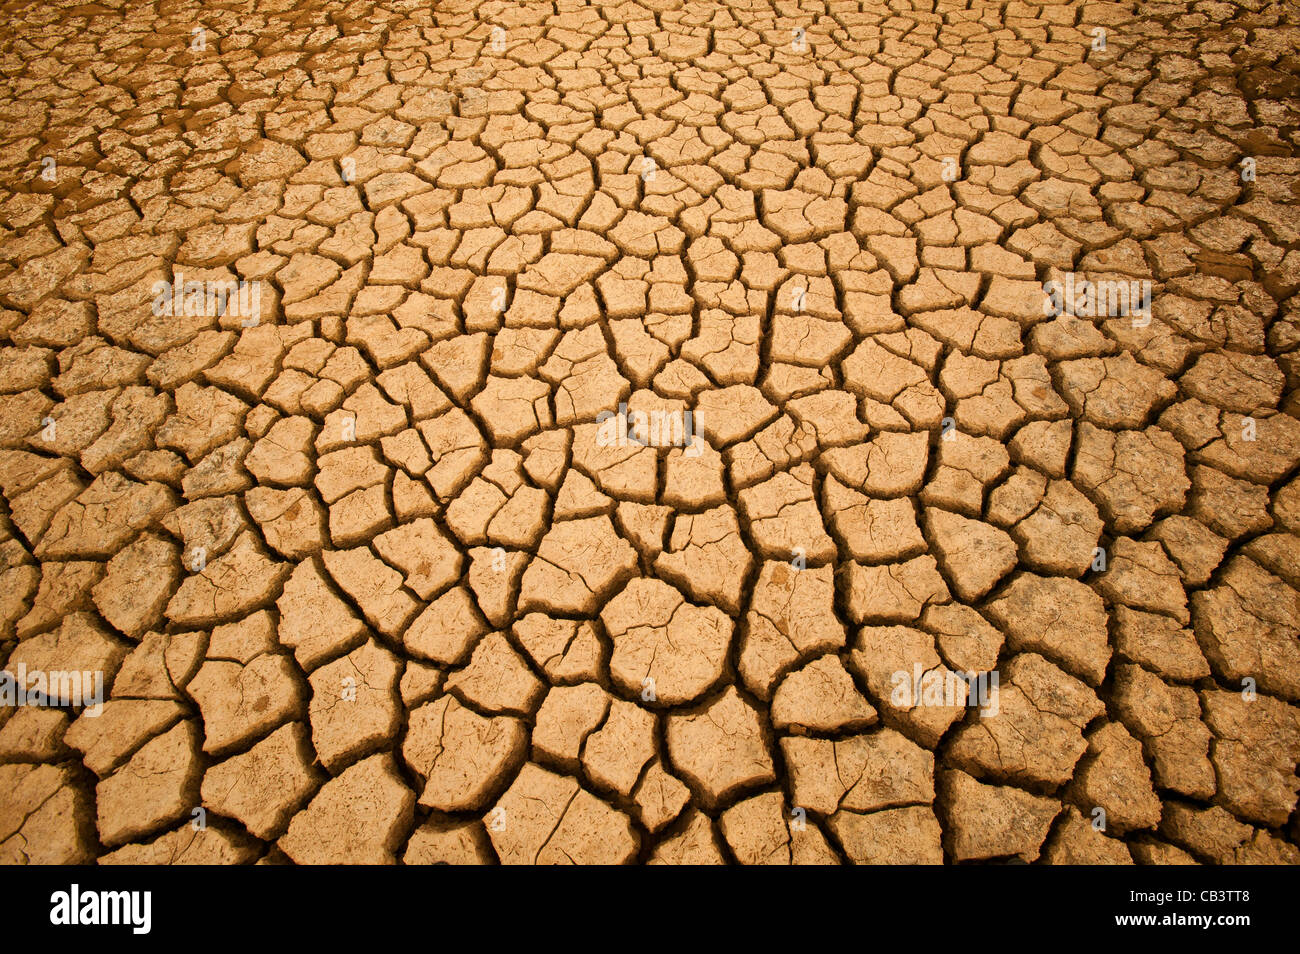 Cracked soil in Sarigua National park (desert) in the Herrera province, Republic of Panama. - Stock Image